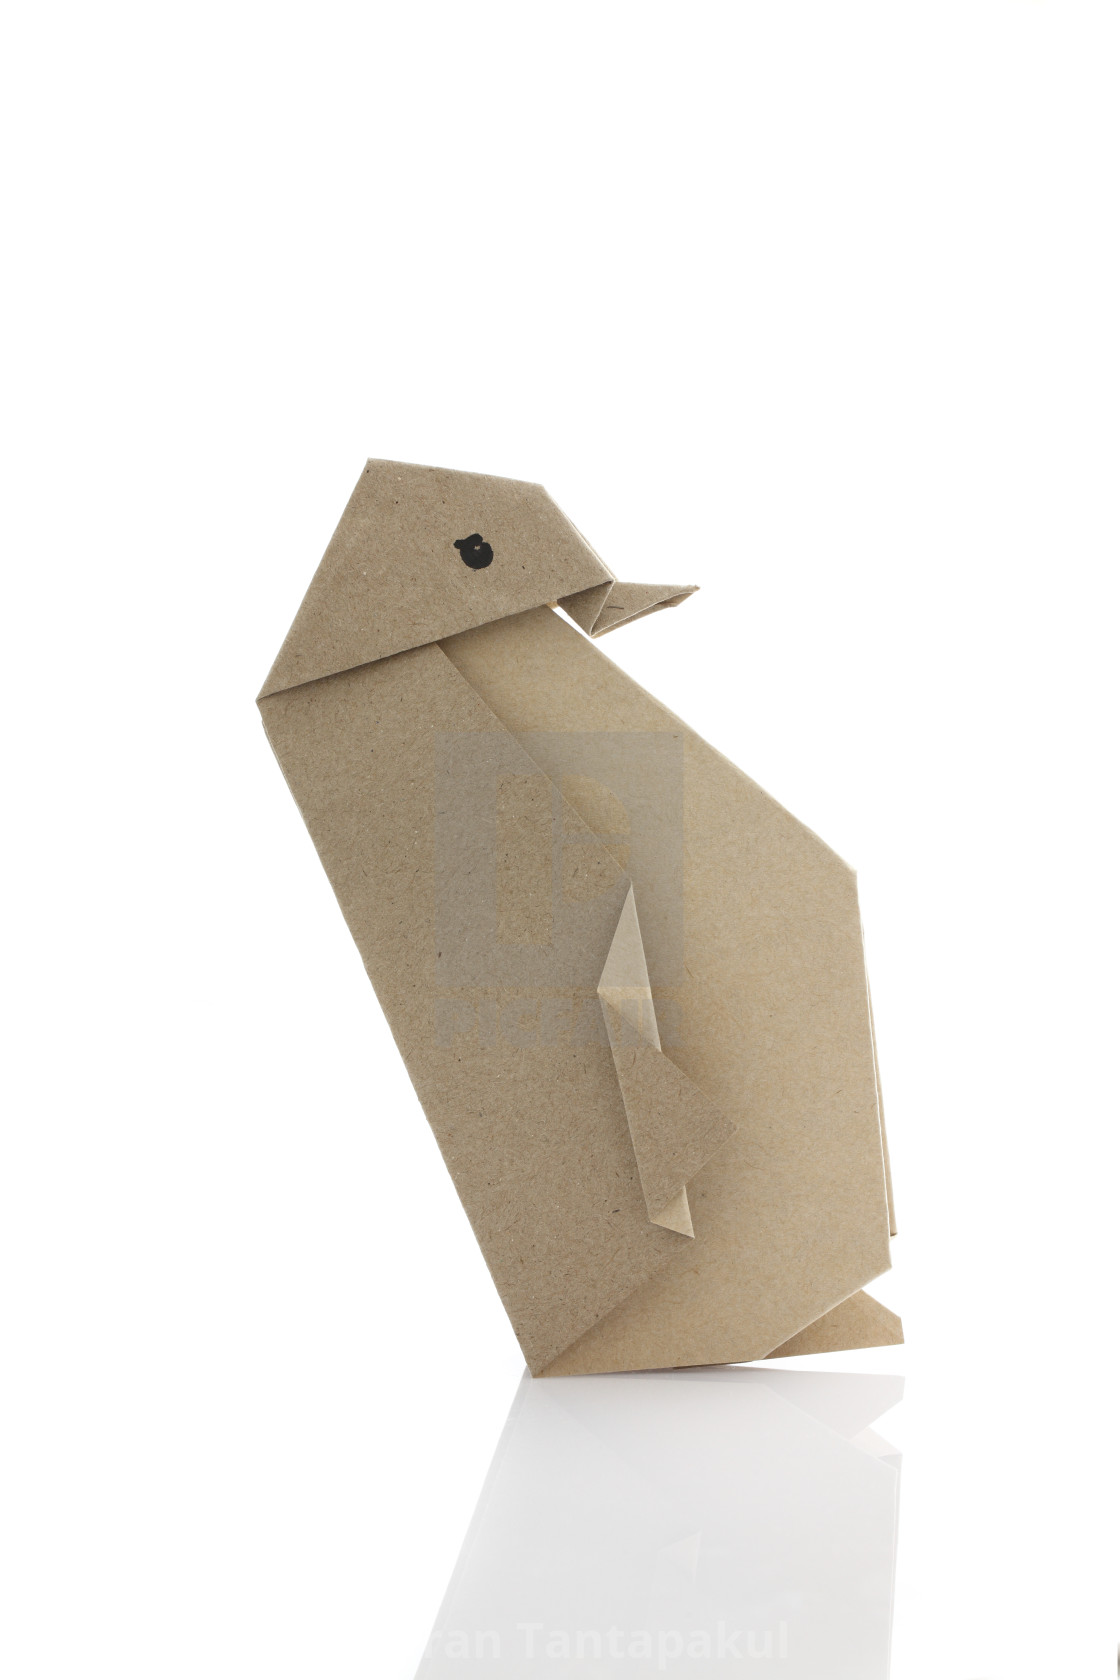 How to make an origami penguin - Quora | 1680x1120